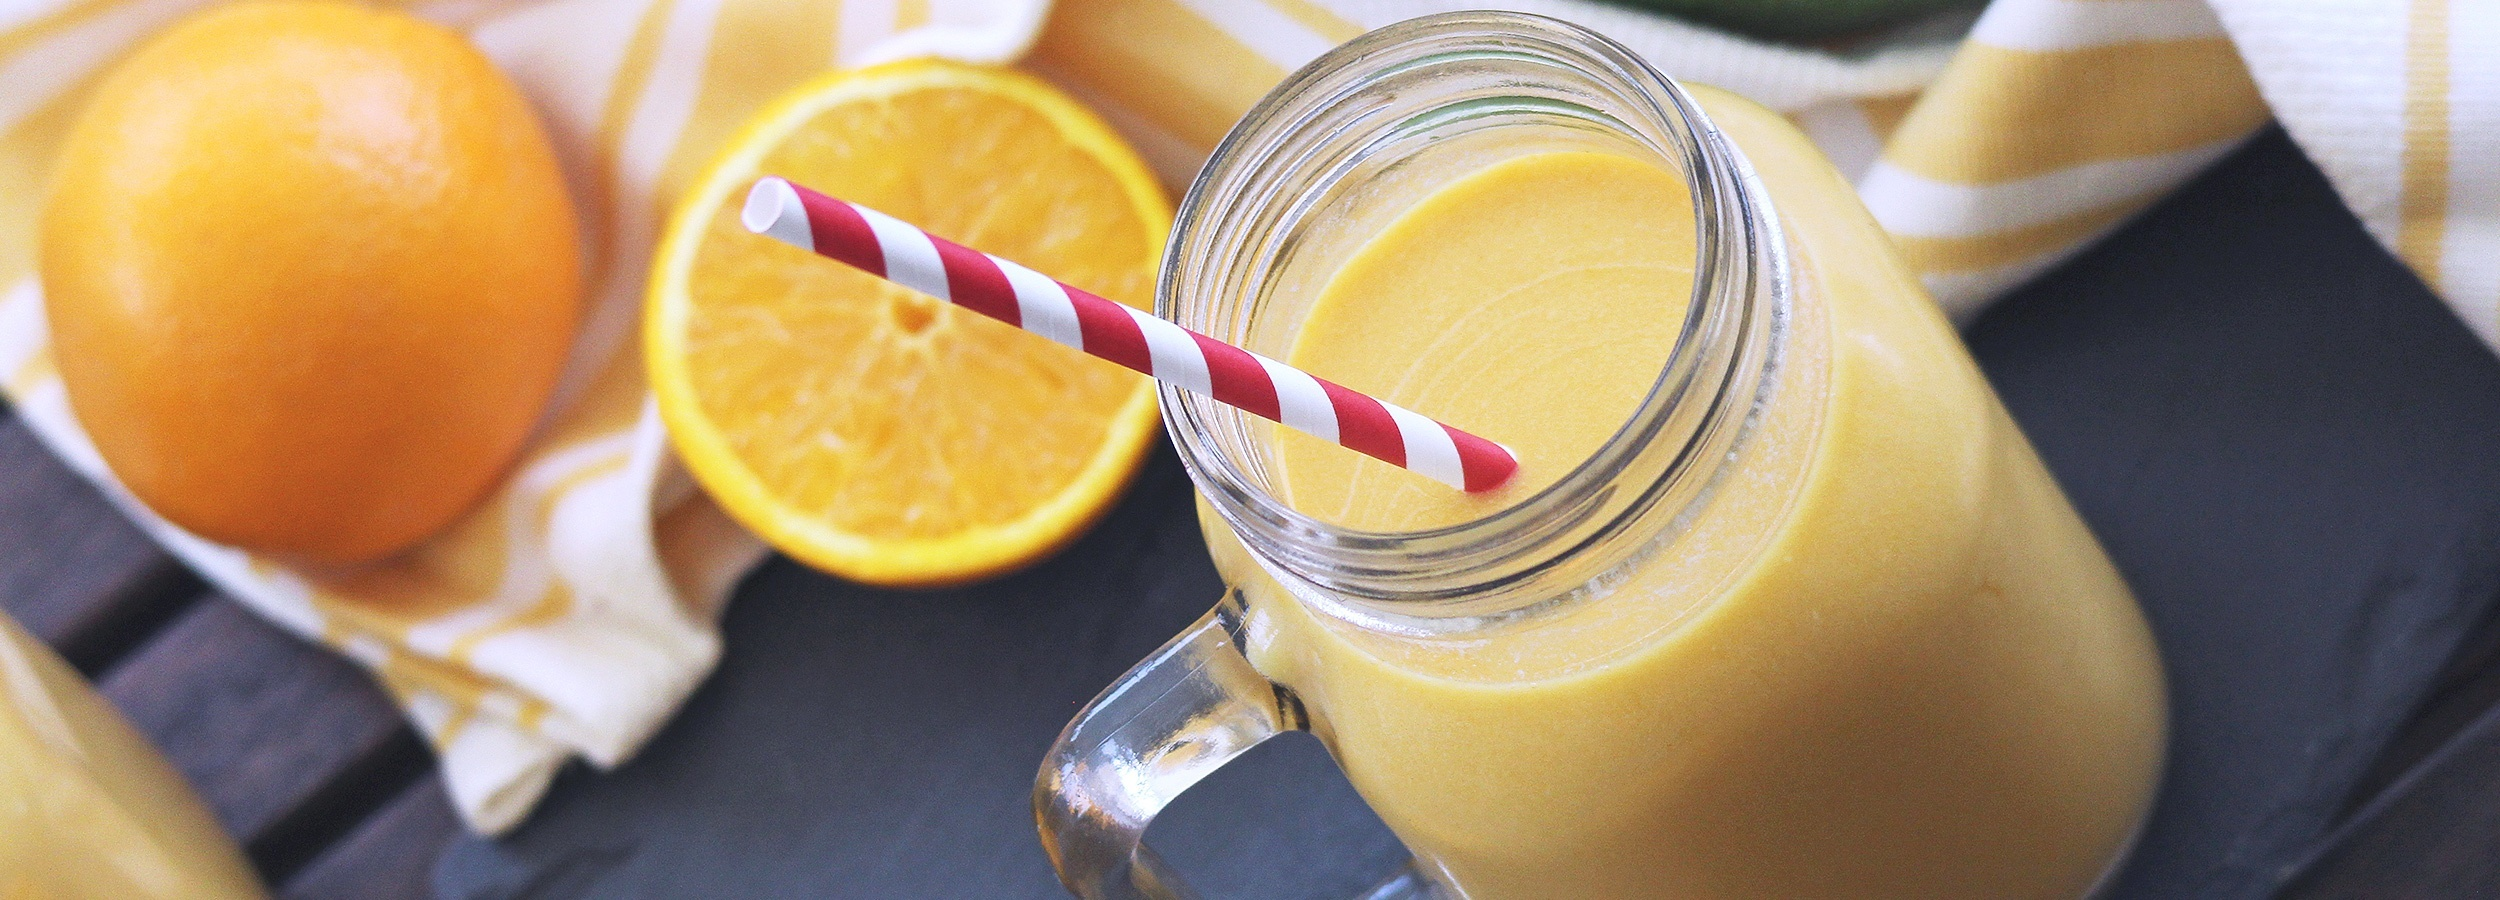 smoothies contain natural sweeteners